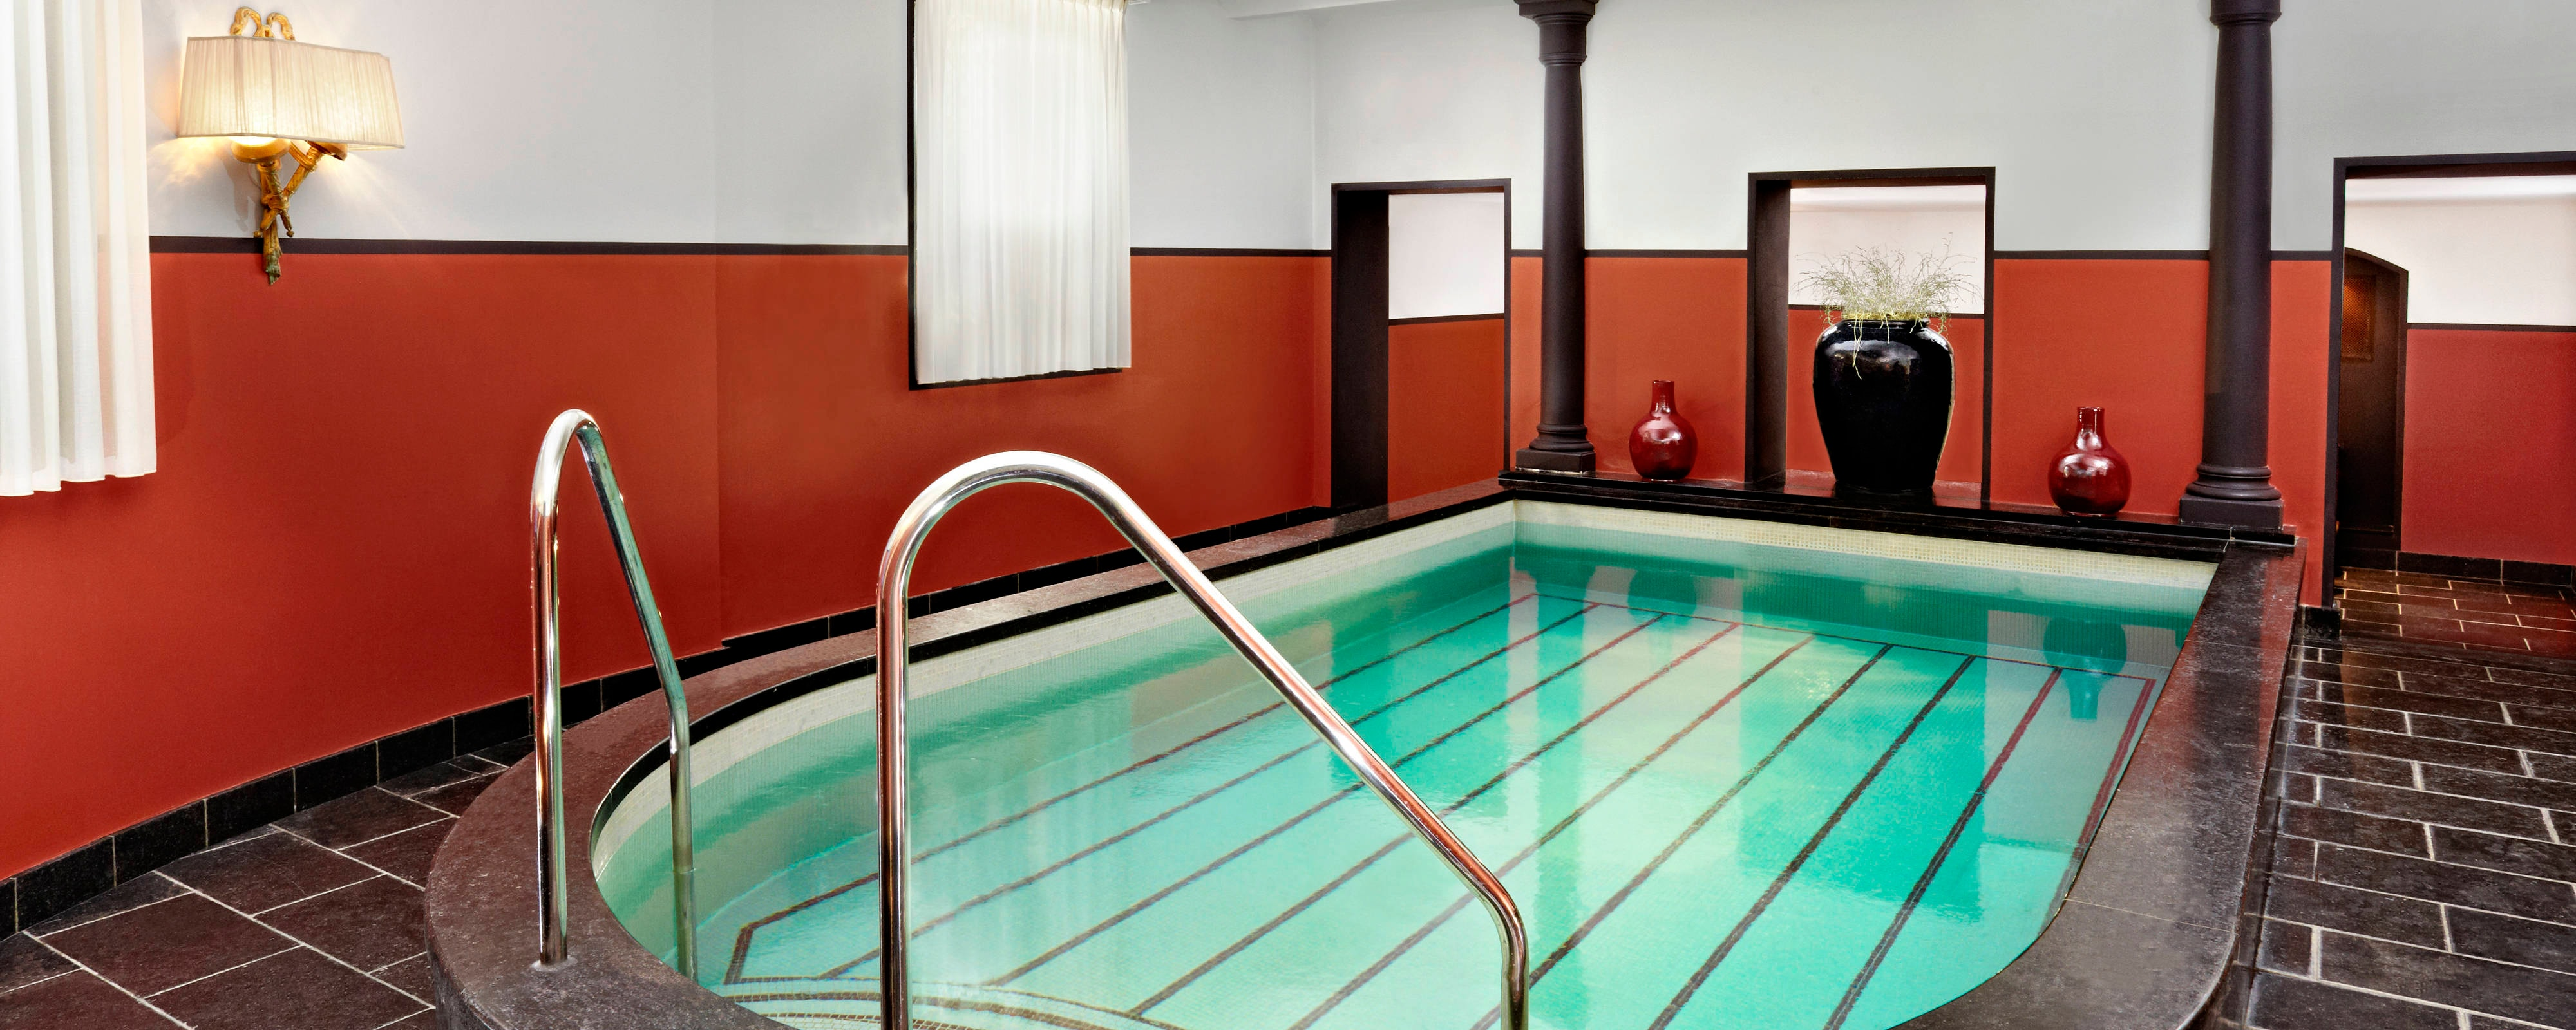 Health Club Des Indes – Pool